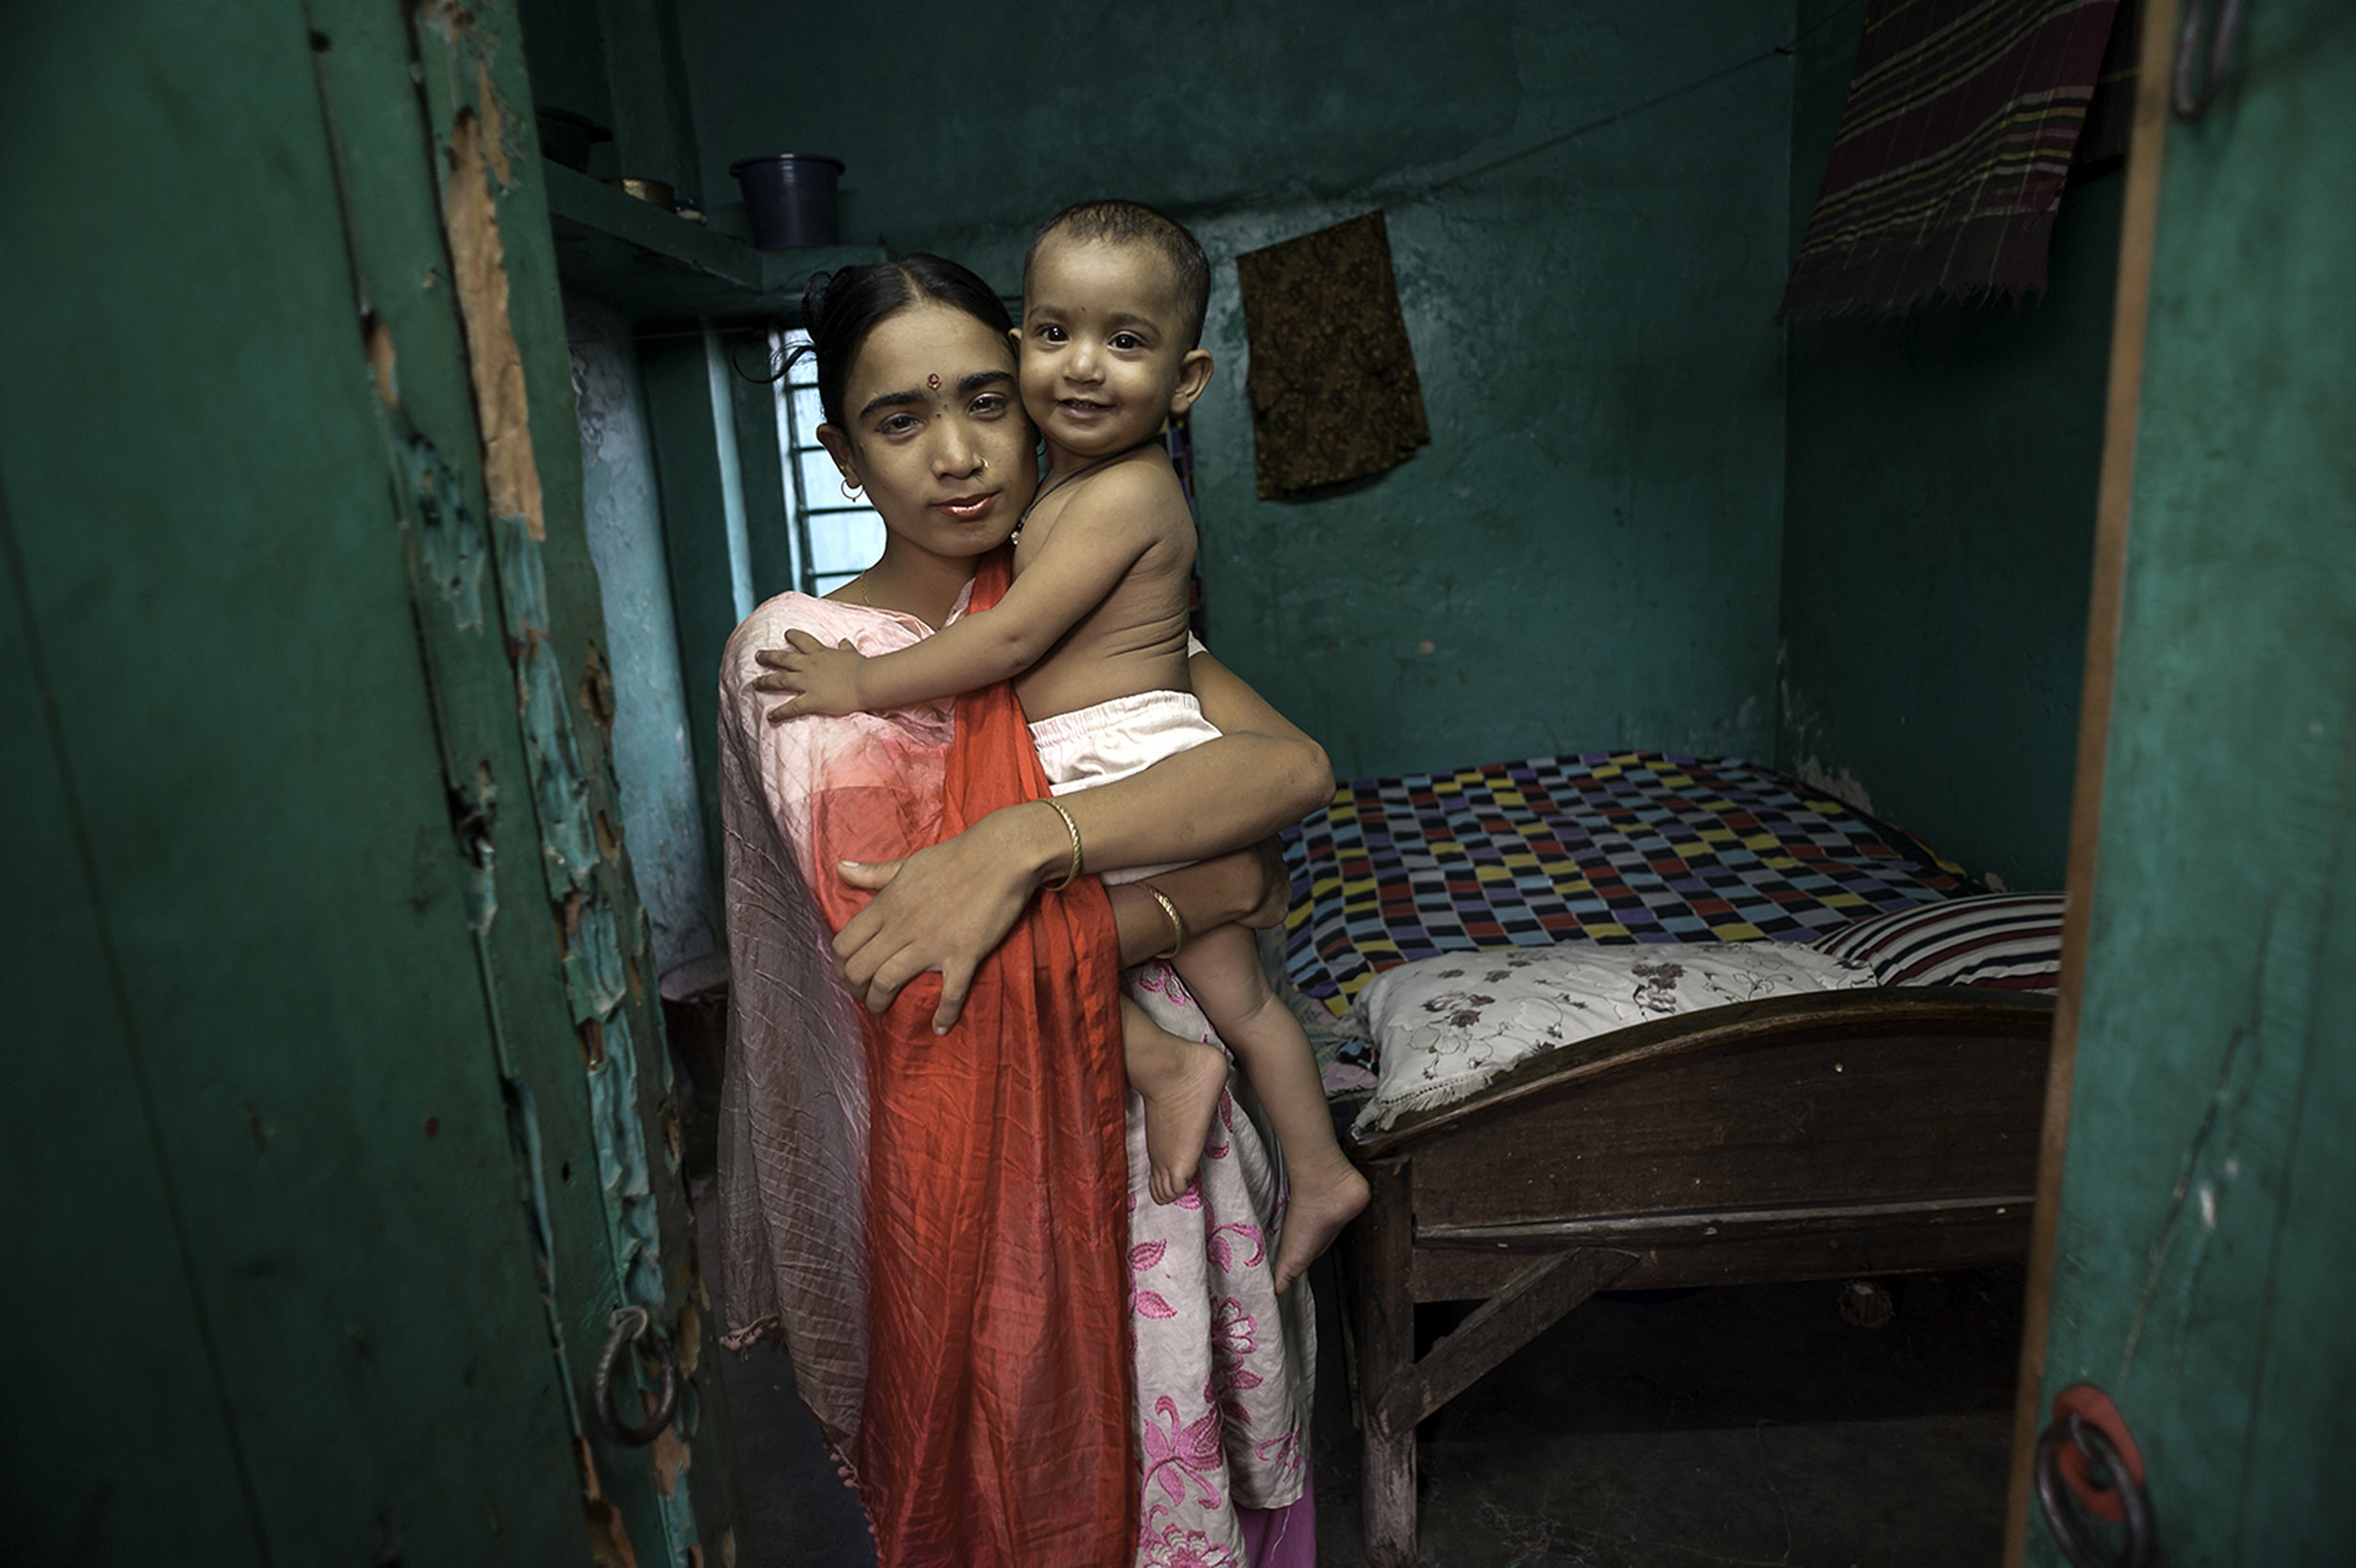 THE CYCLE CONTINUES - Labone, 27, takes a moment to hold her young daughter Nupur, 1, who was fathered by a client, before she has to return to her evening's work in a brothel in Jessore, Bangladesh. Most children born into the sex trade follow the same cycle of abuse as their mothers. With more than half of its population living below the poverty line, Bangladesh remains one of the poorest countries in the world